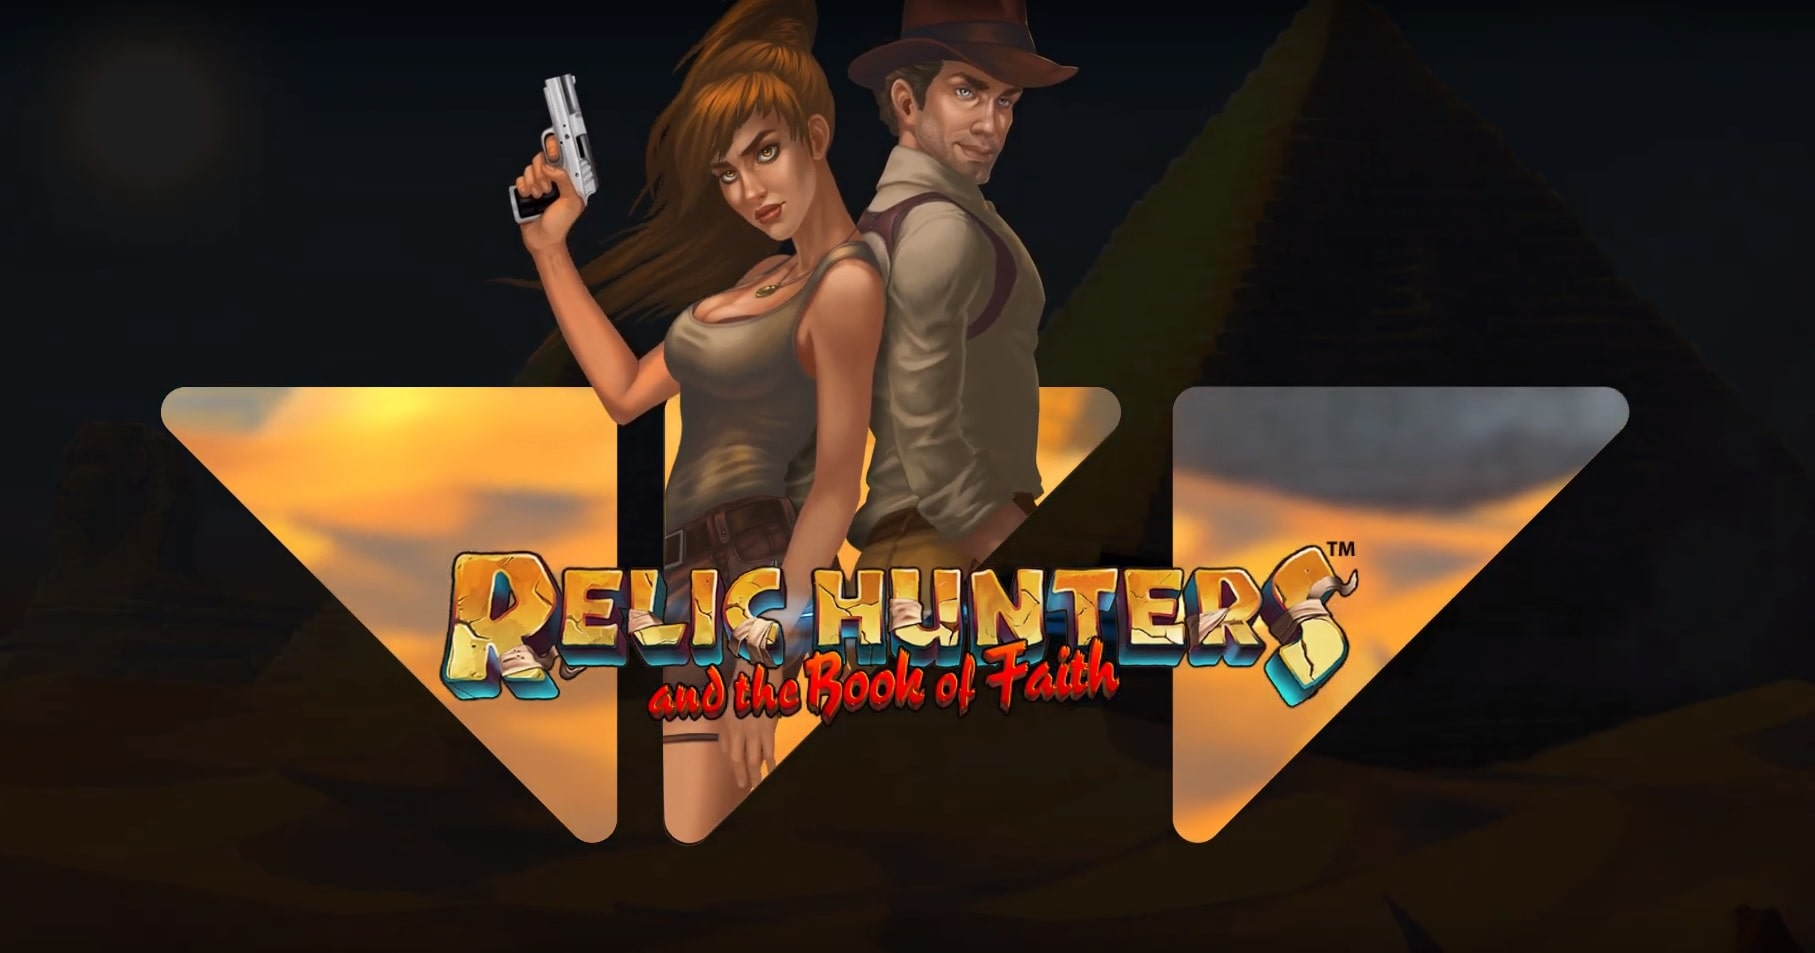 The main characters of the Relic Hunters and the Book of Faith slot from Wazdan.